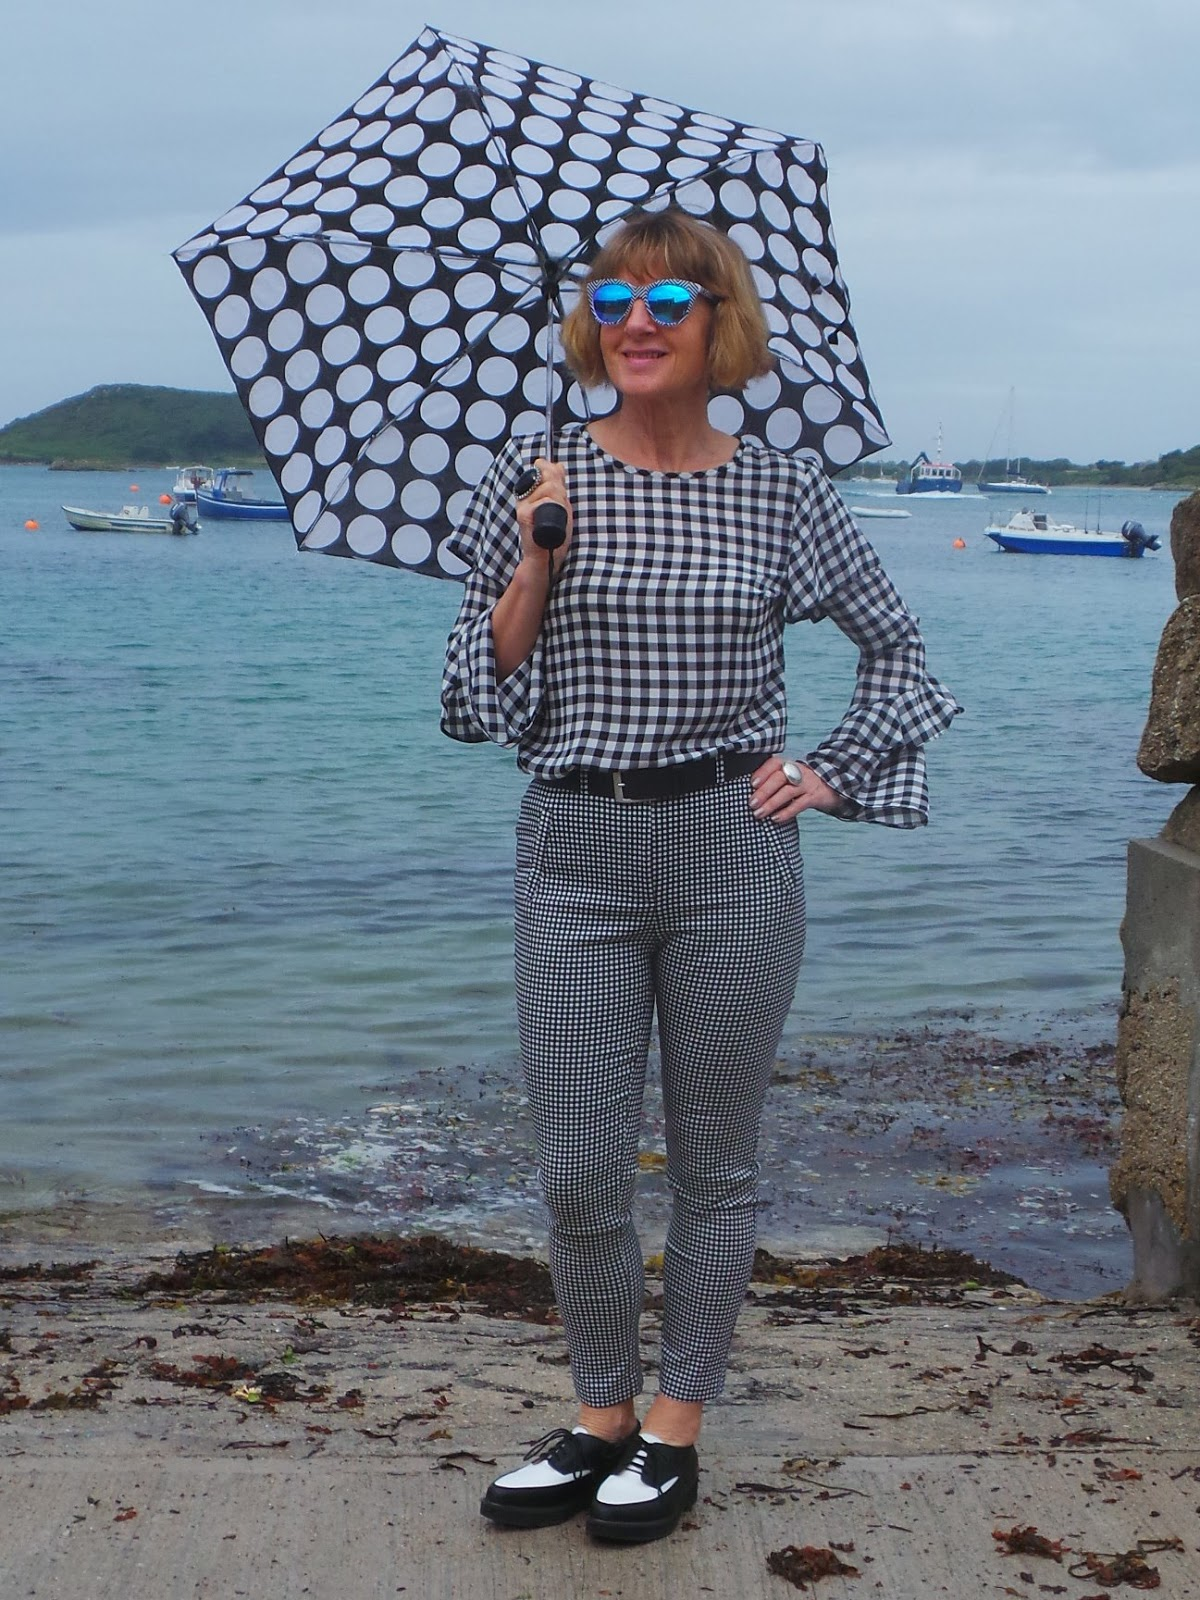 Showing how you can have fun with black and white and pattern mixing, Anna Parkes from Anna's Island Style in gingham, check trousers and a fun circles umbrella